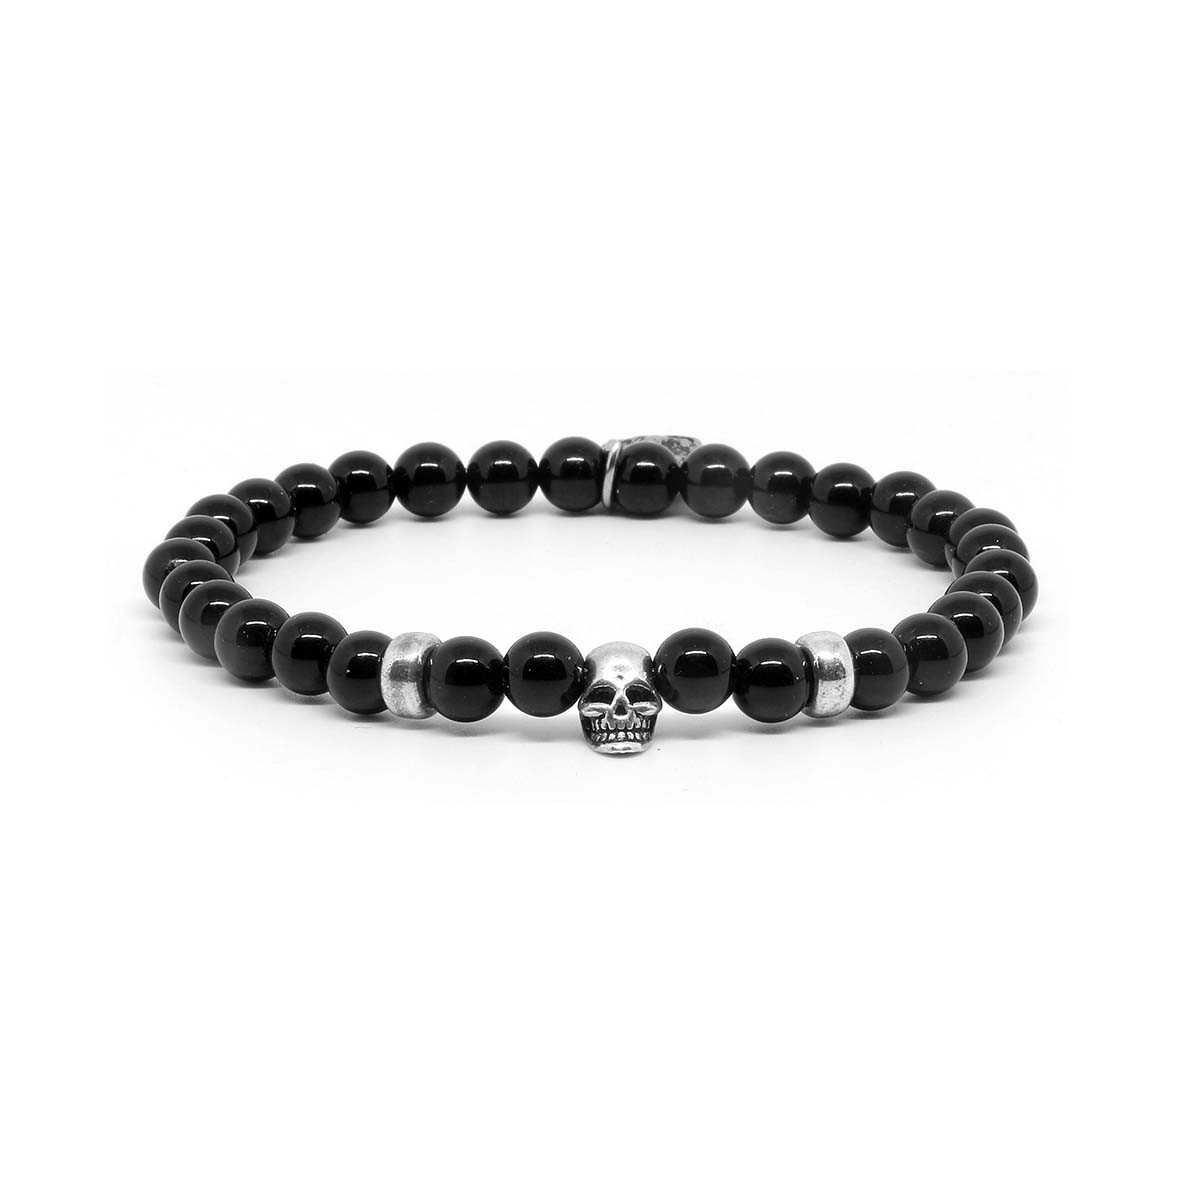 bracelet homme dogme96 achabal